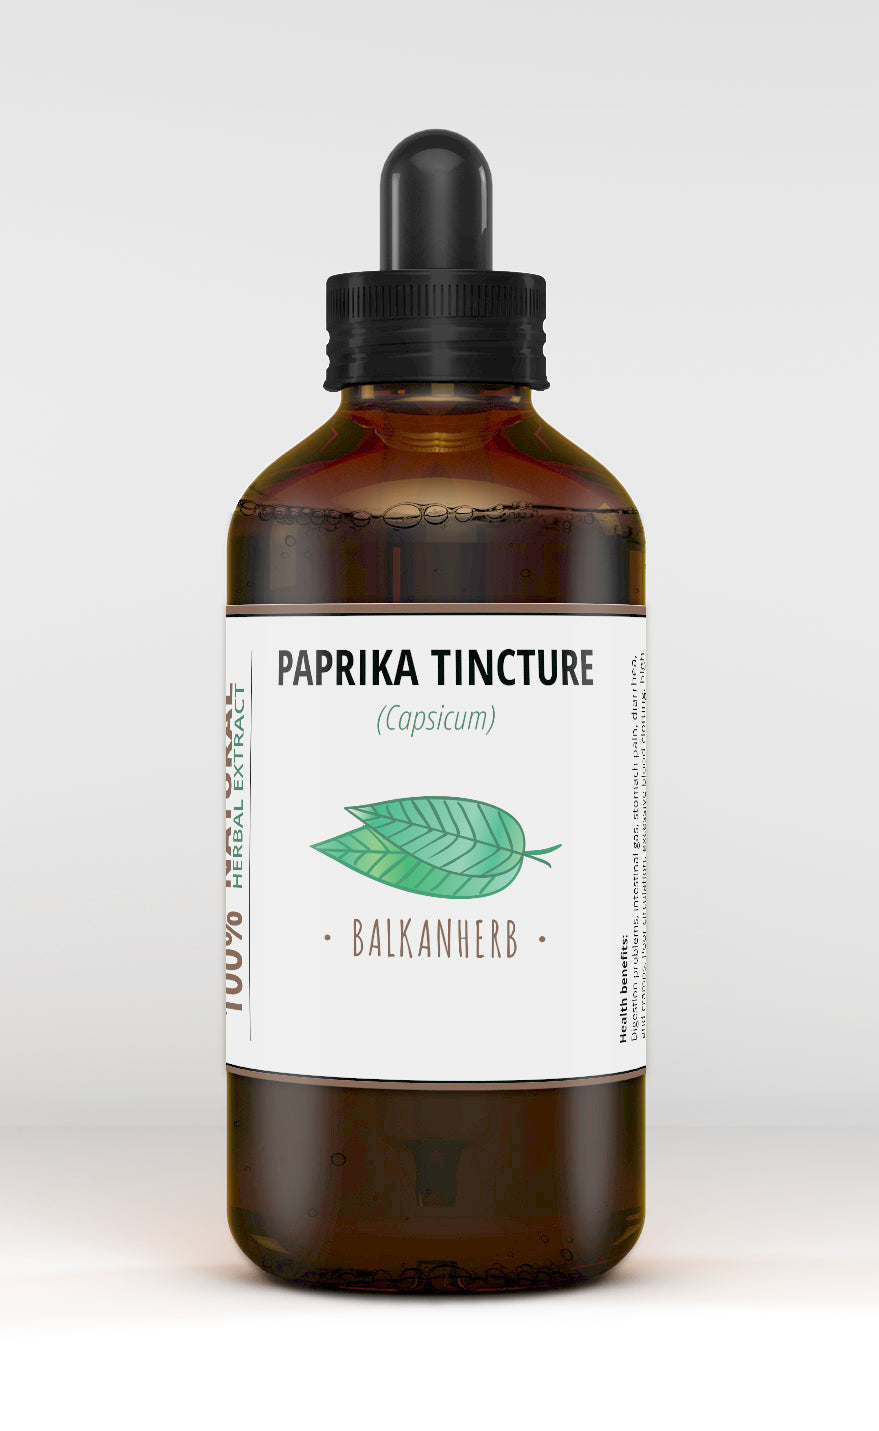 Paprika Tincture - Red pepper - (Capsicum) - Herb drops - Herbal extract